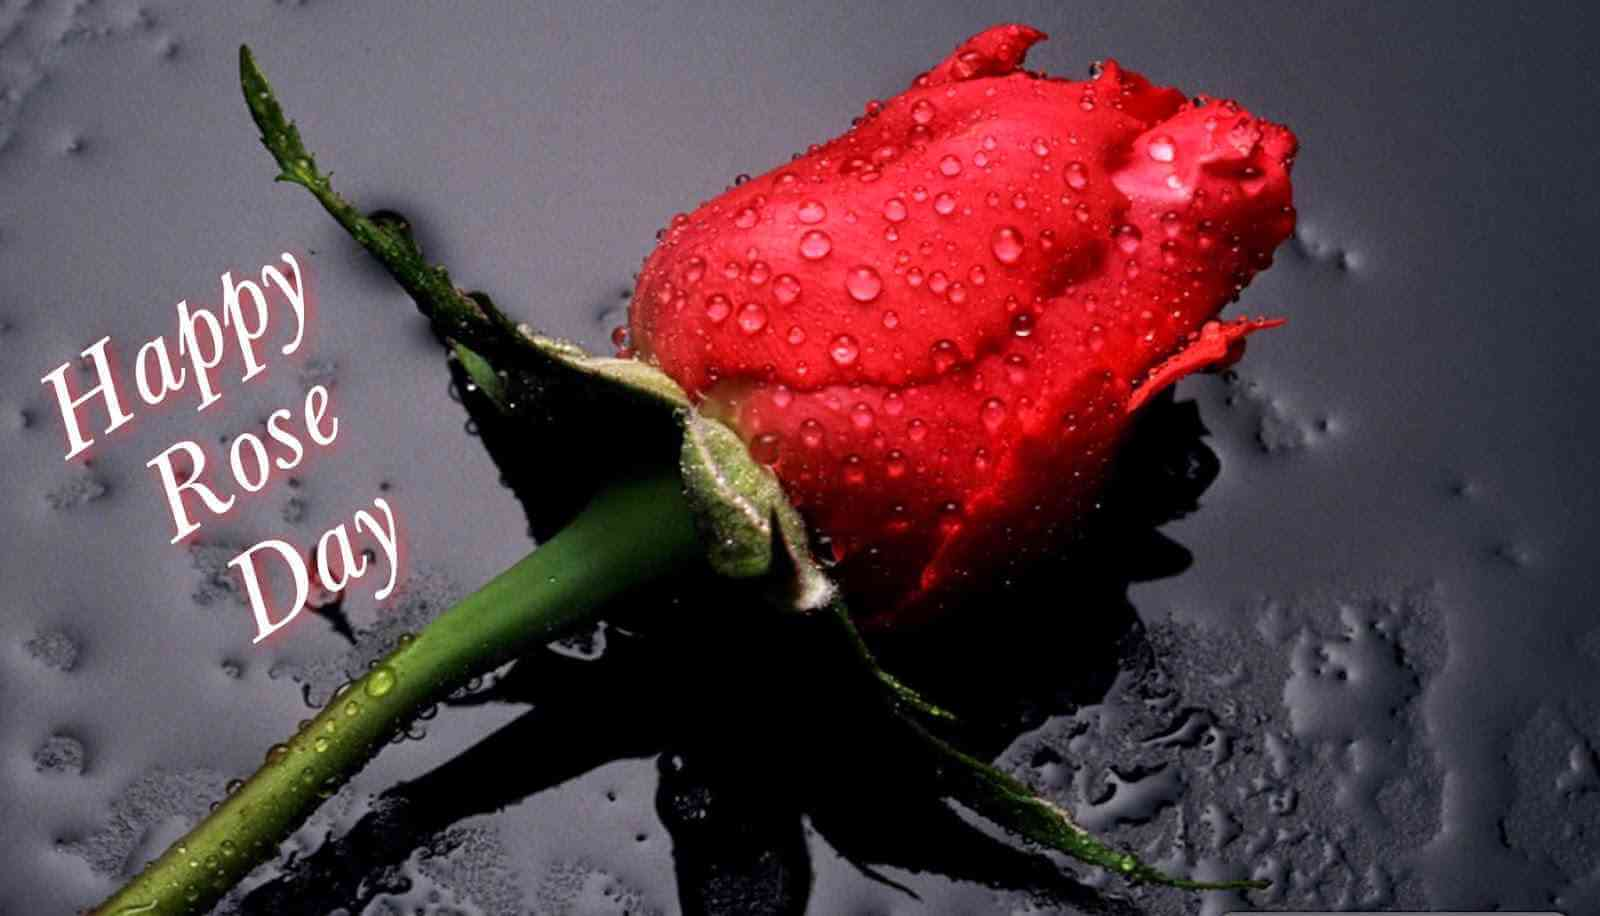 Happy Rose Day Quotes for Wife